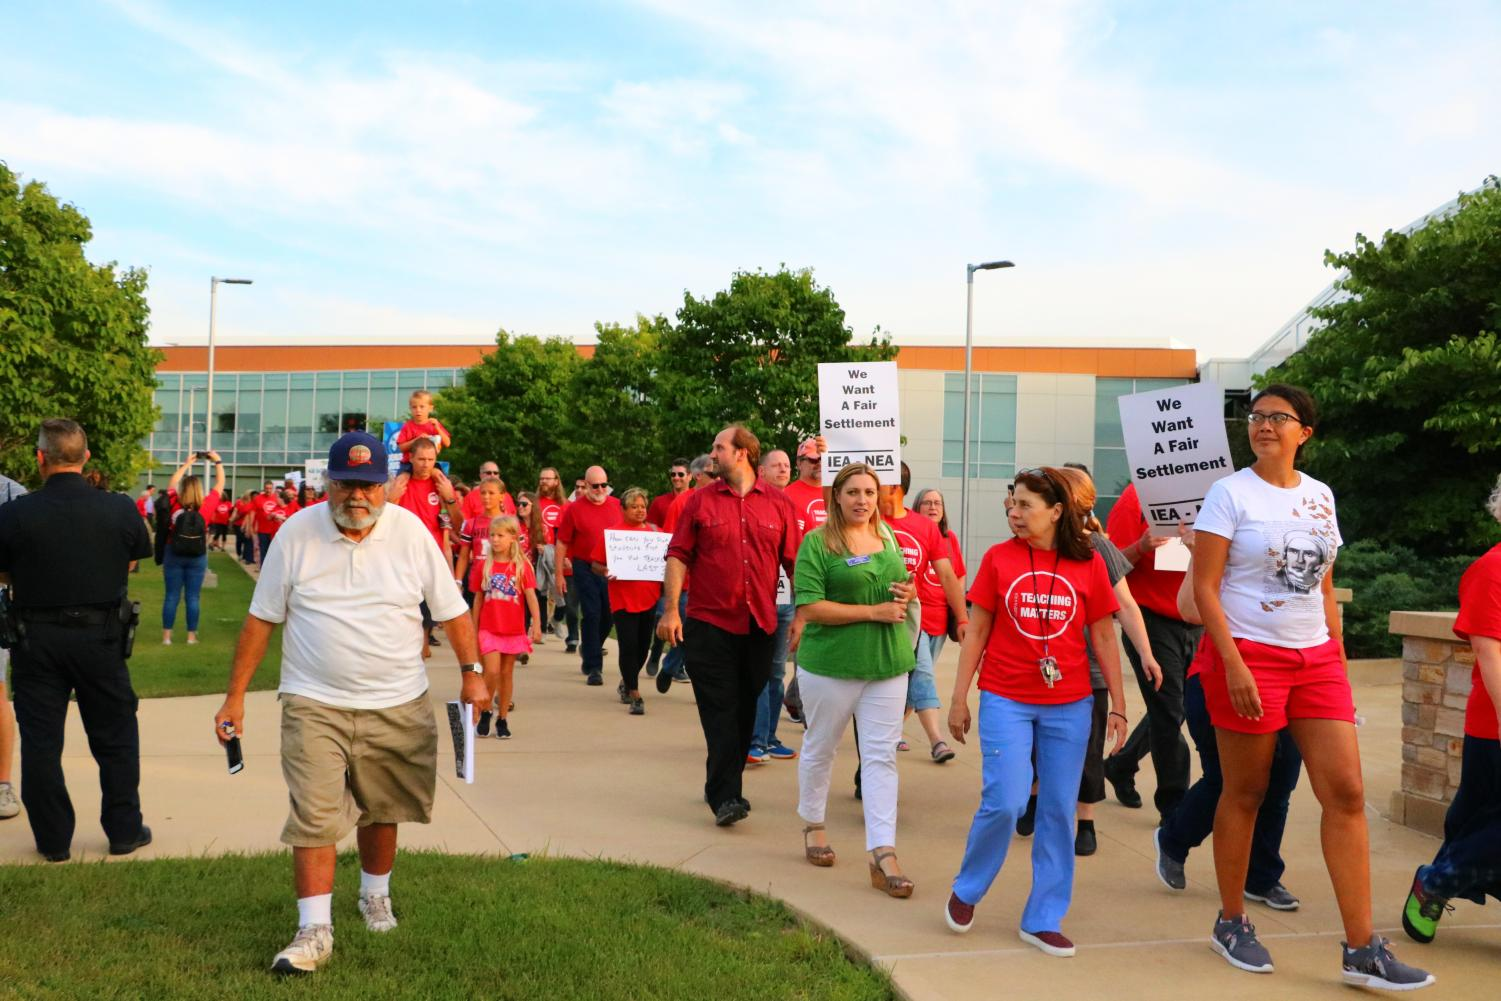 The College of DuPage Faculty Association and community supporters protest before the Aug. 15 board of trustees  meeting (photo by: Alison Pfaff)